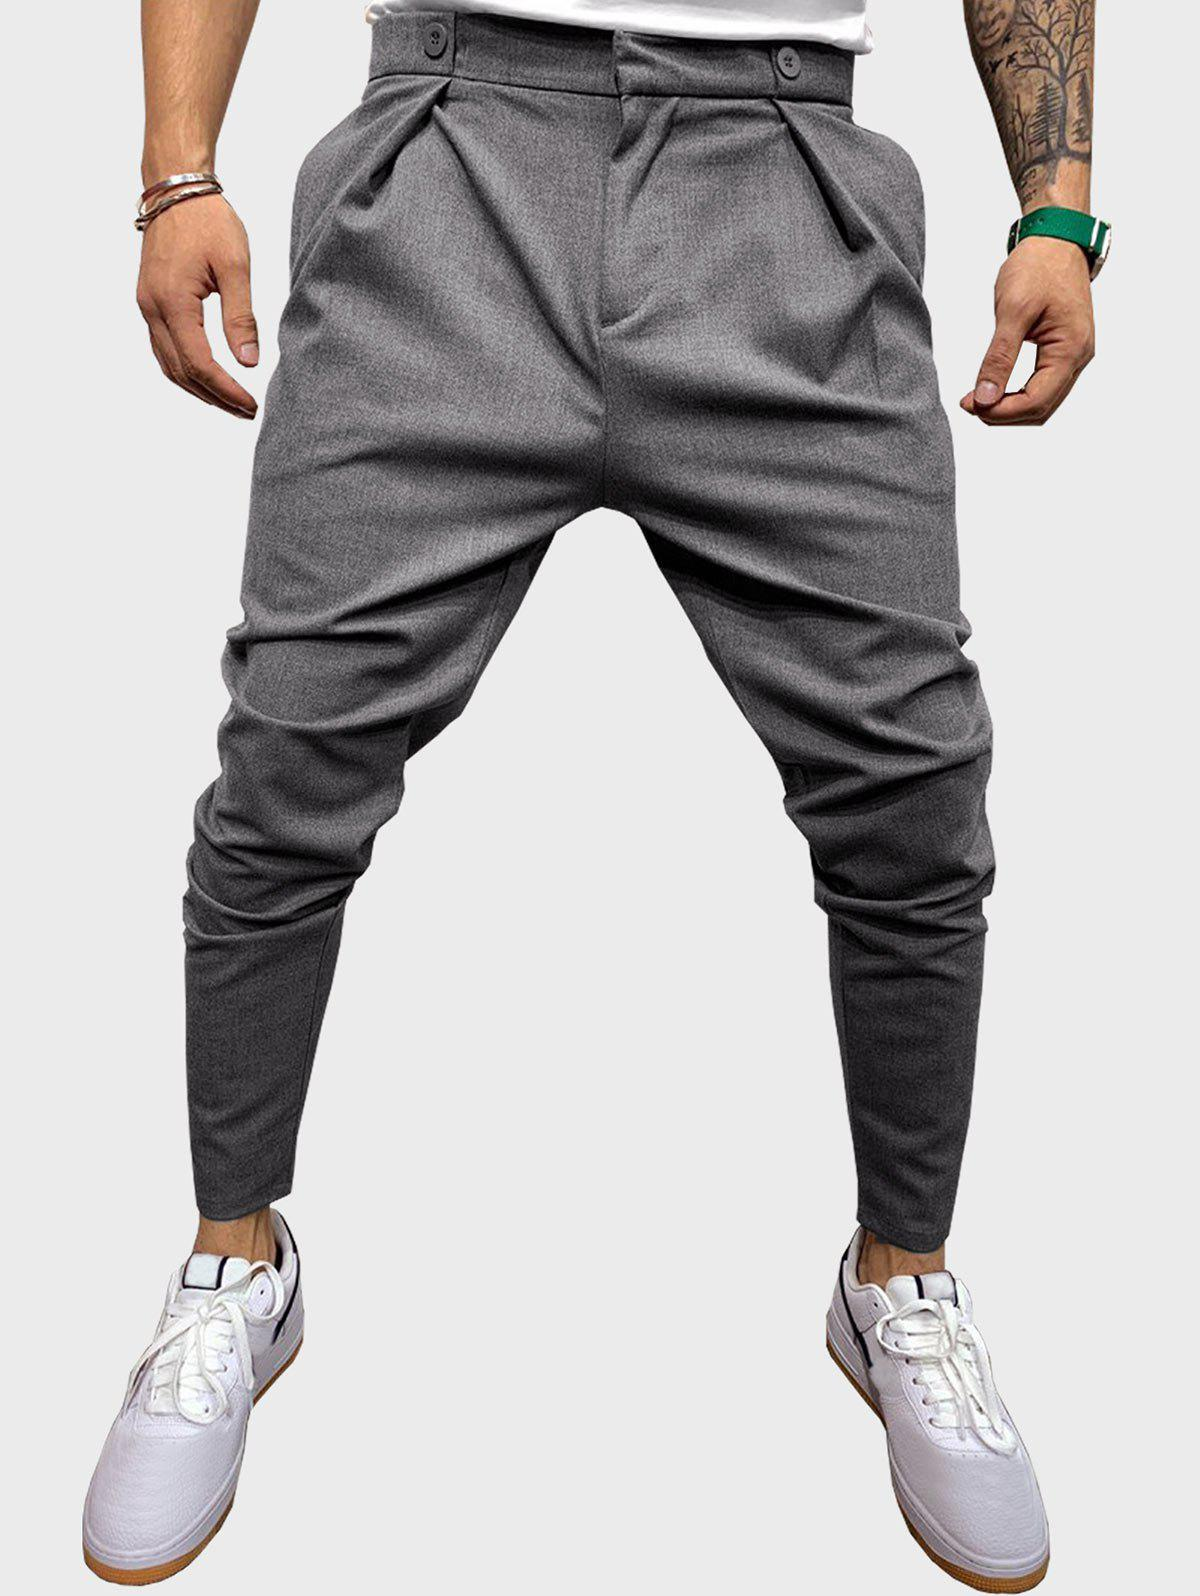 Unique Button Detail Casual Tapered Pants